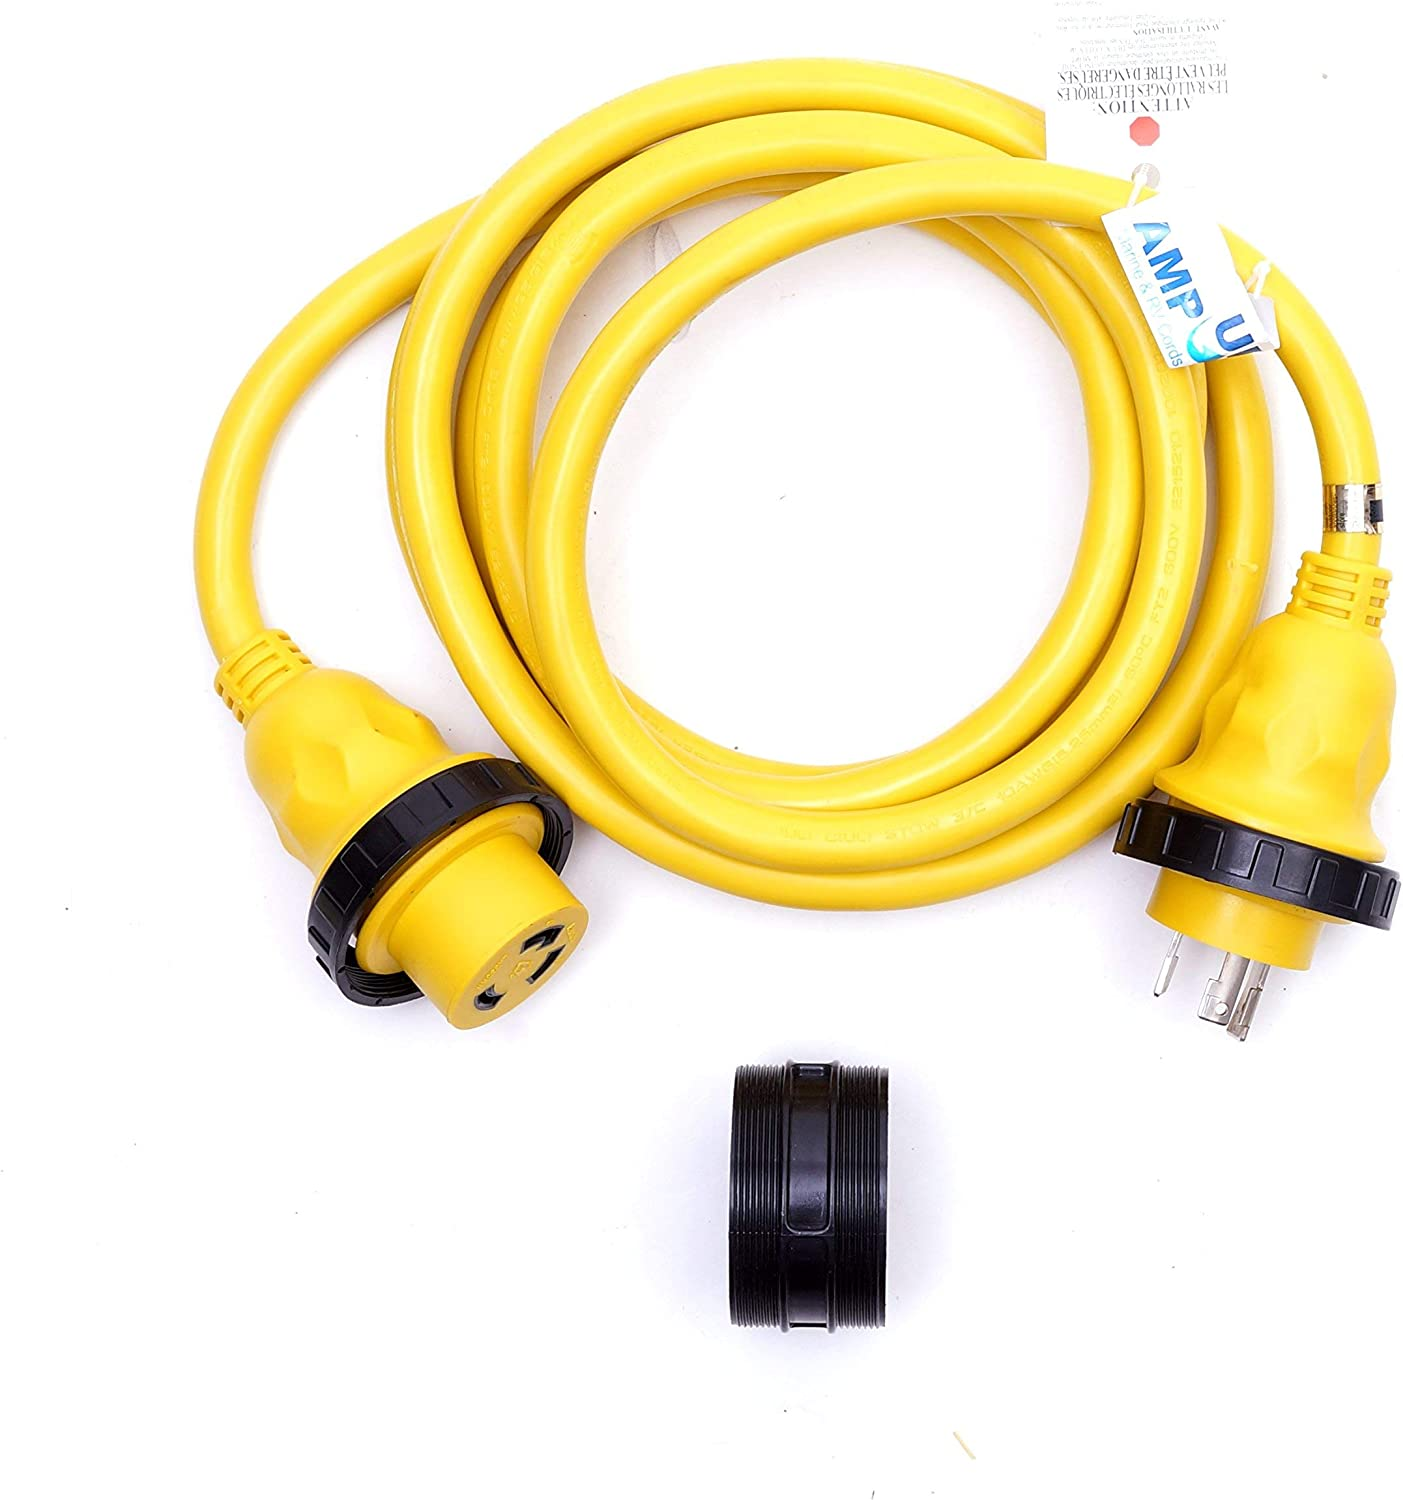 Amp Up Marine & RV Cords 125v 30 amp x 12' Marine Shore Power Boat Extension Cord, 12 ft - 21311